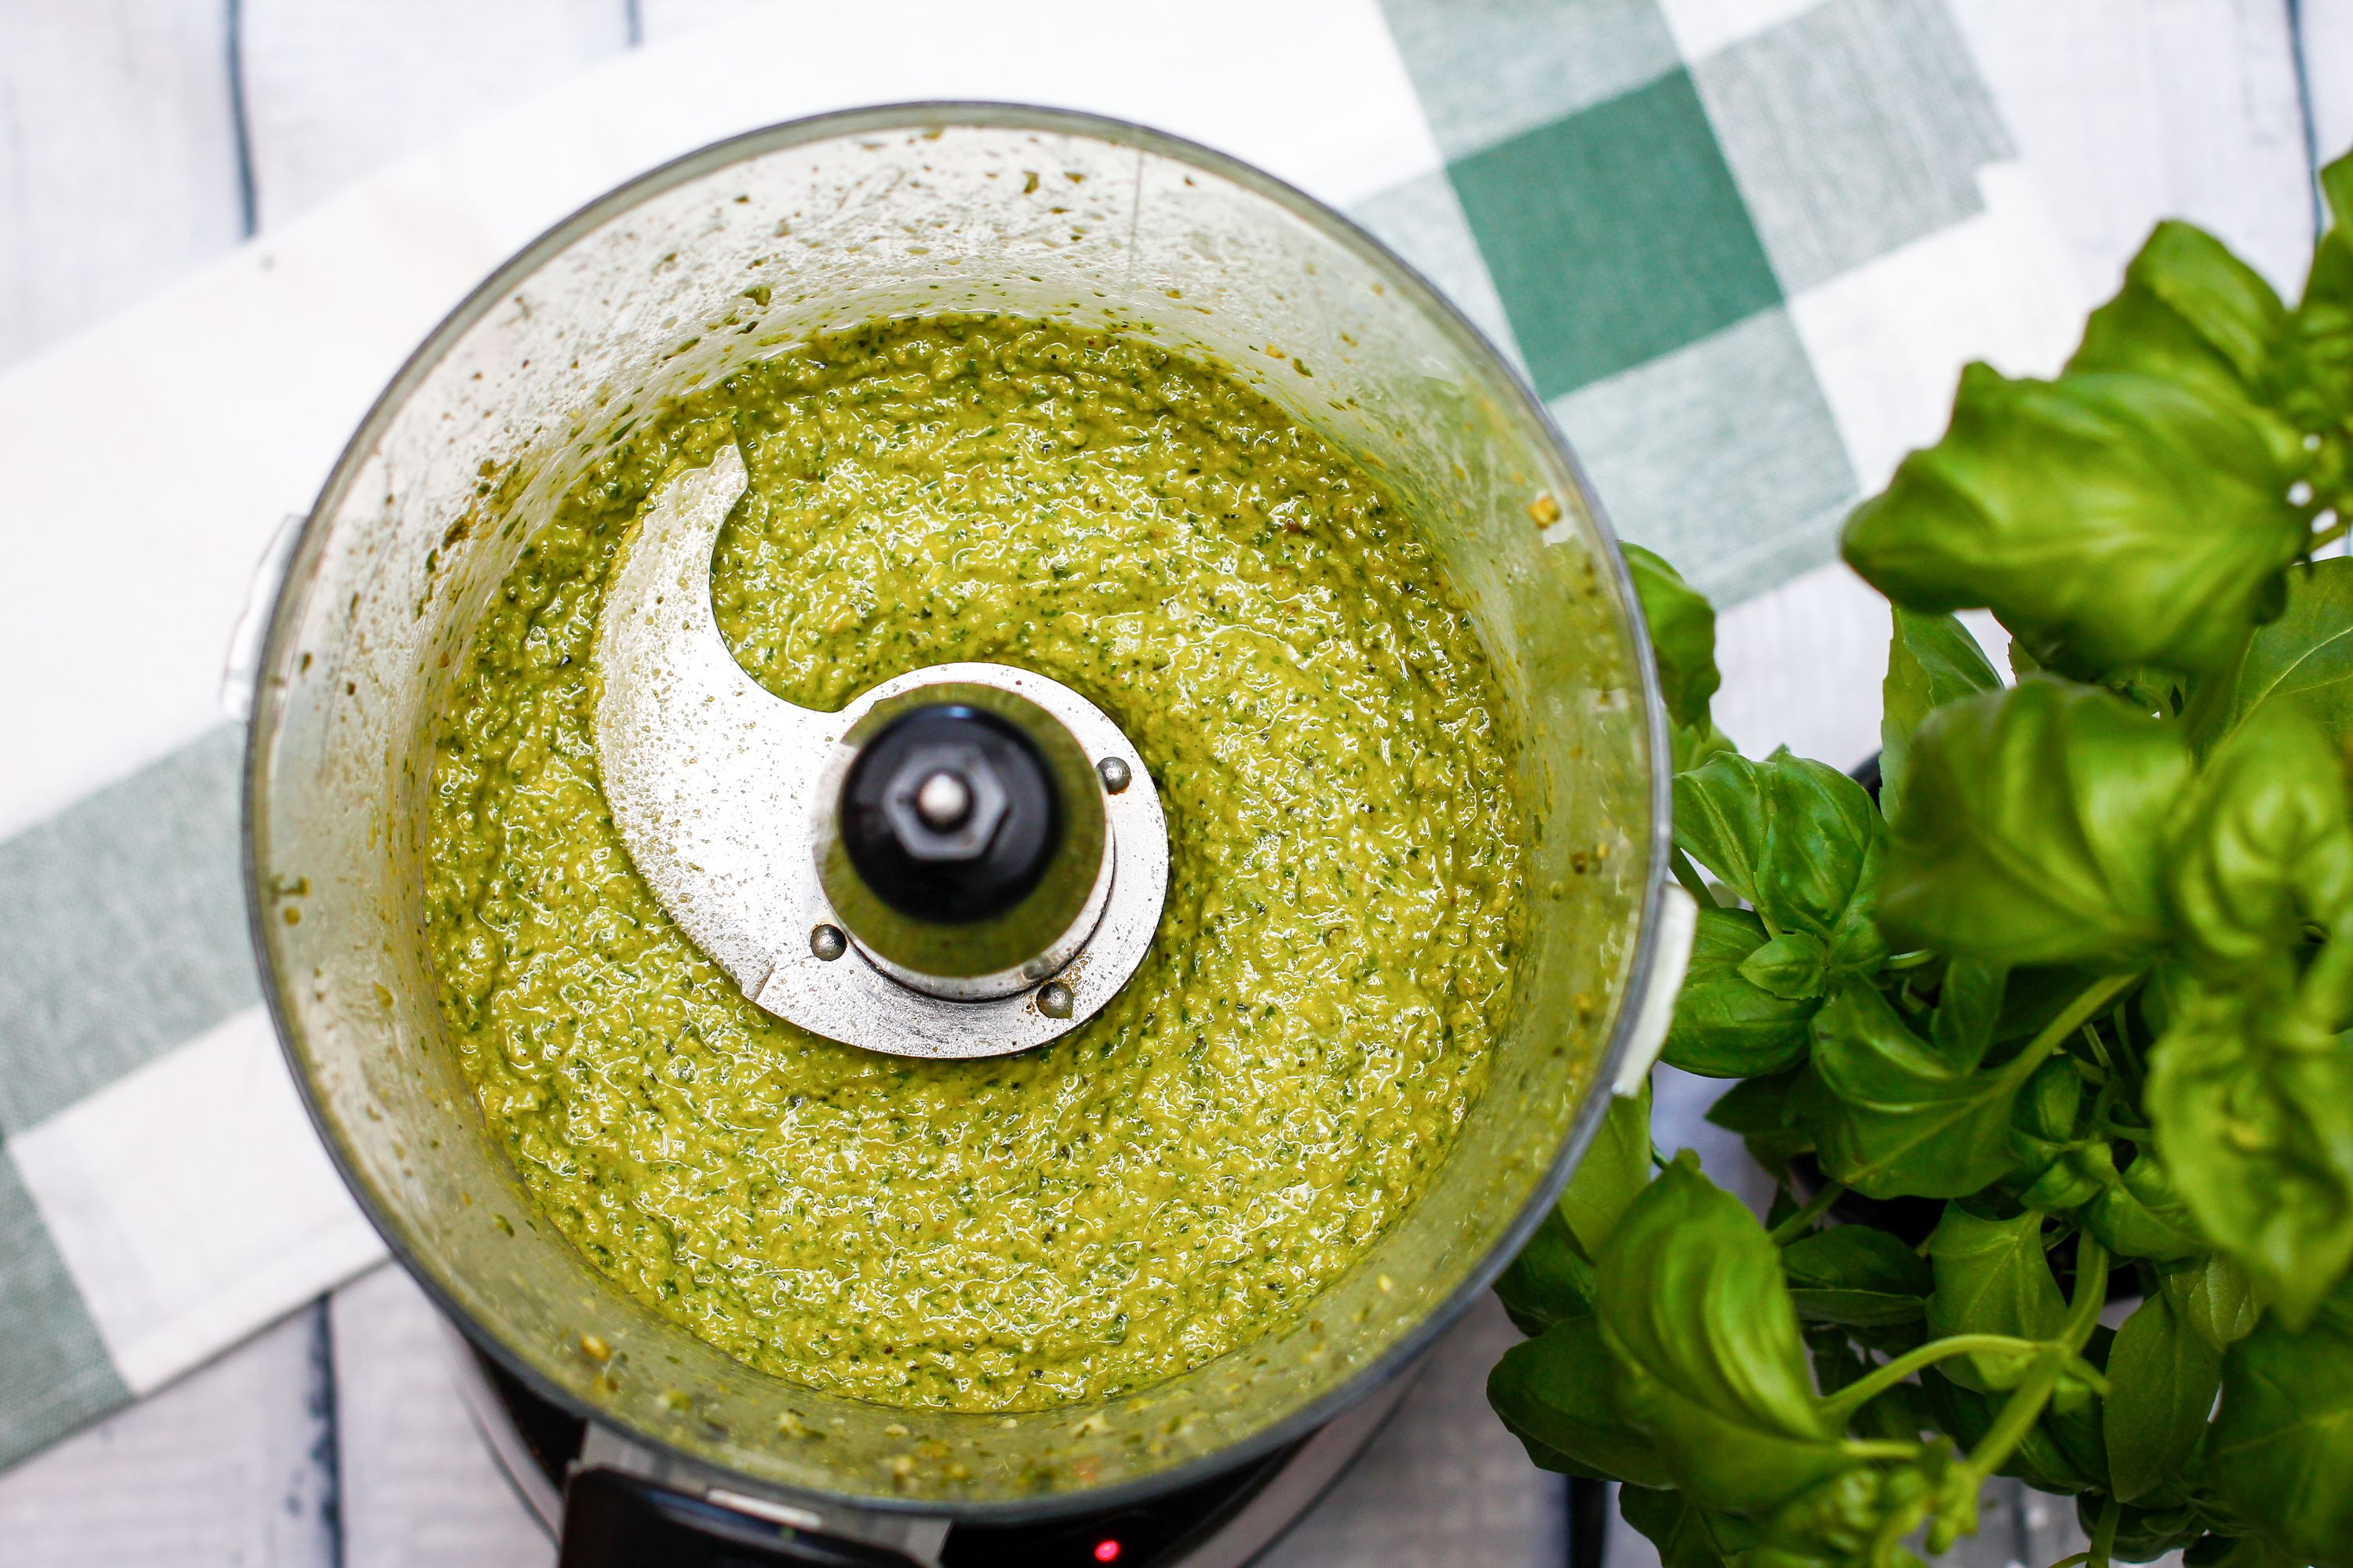 Pesto sauce blended into a paste in a food processor